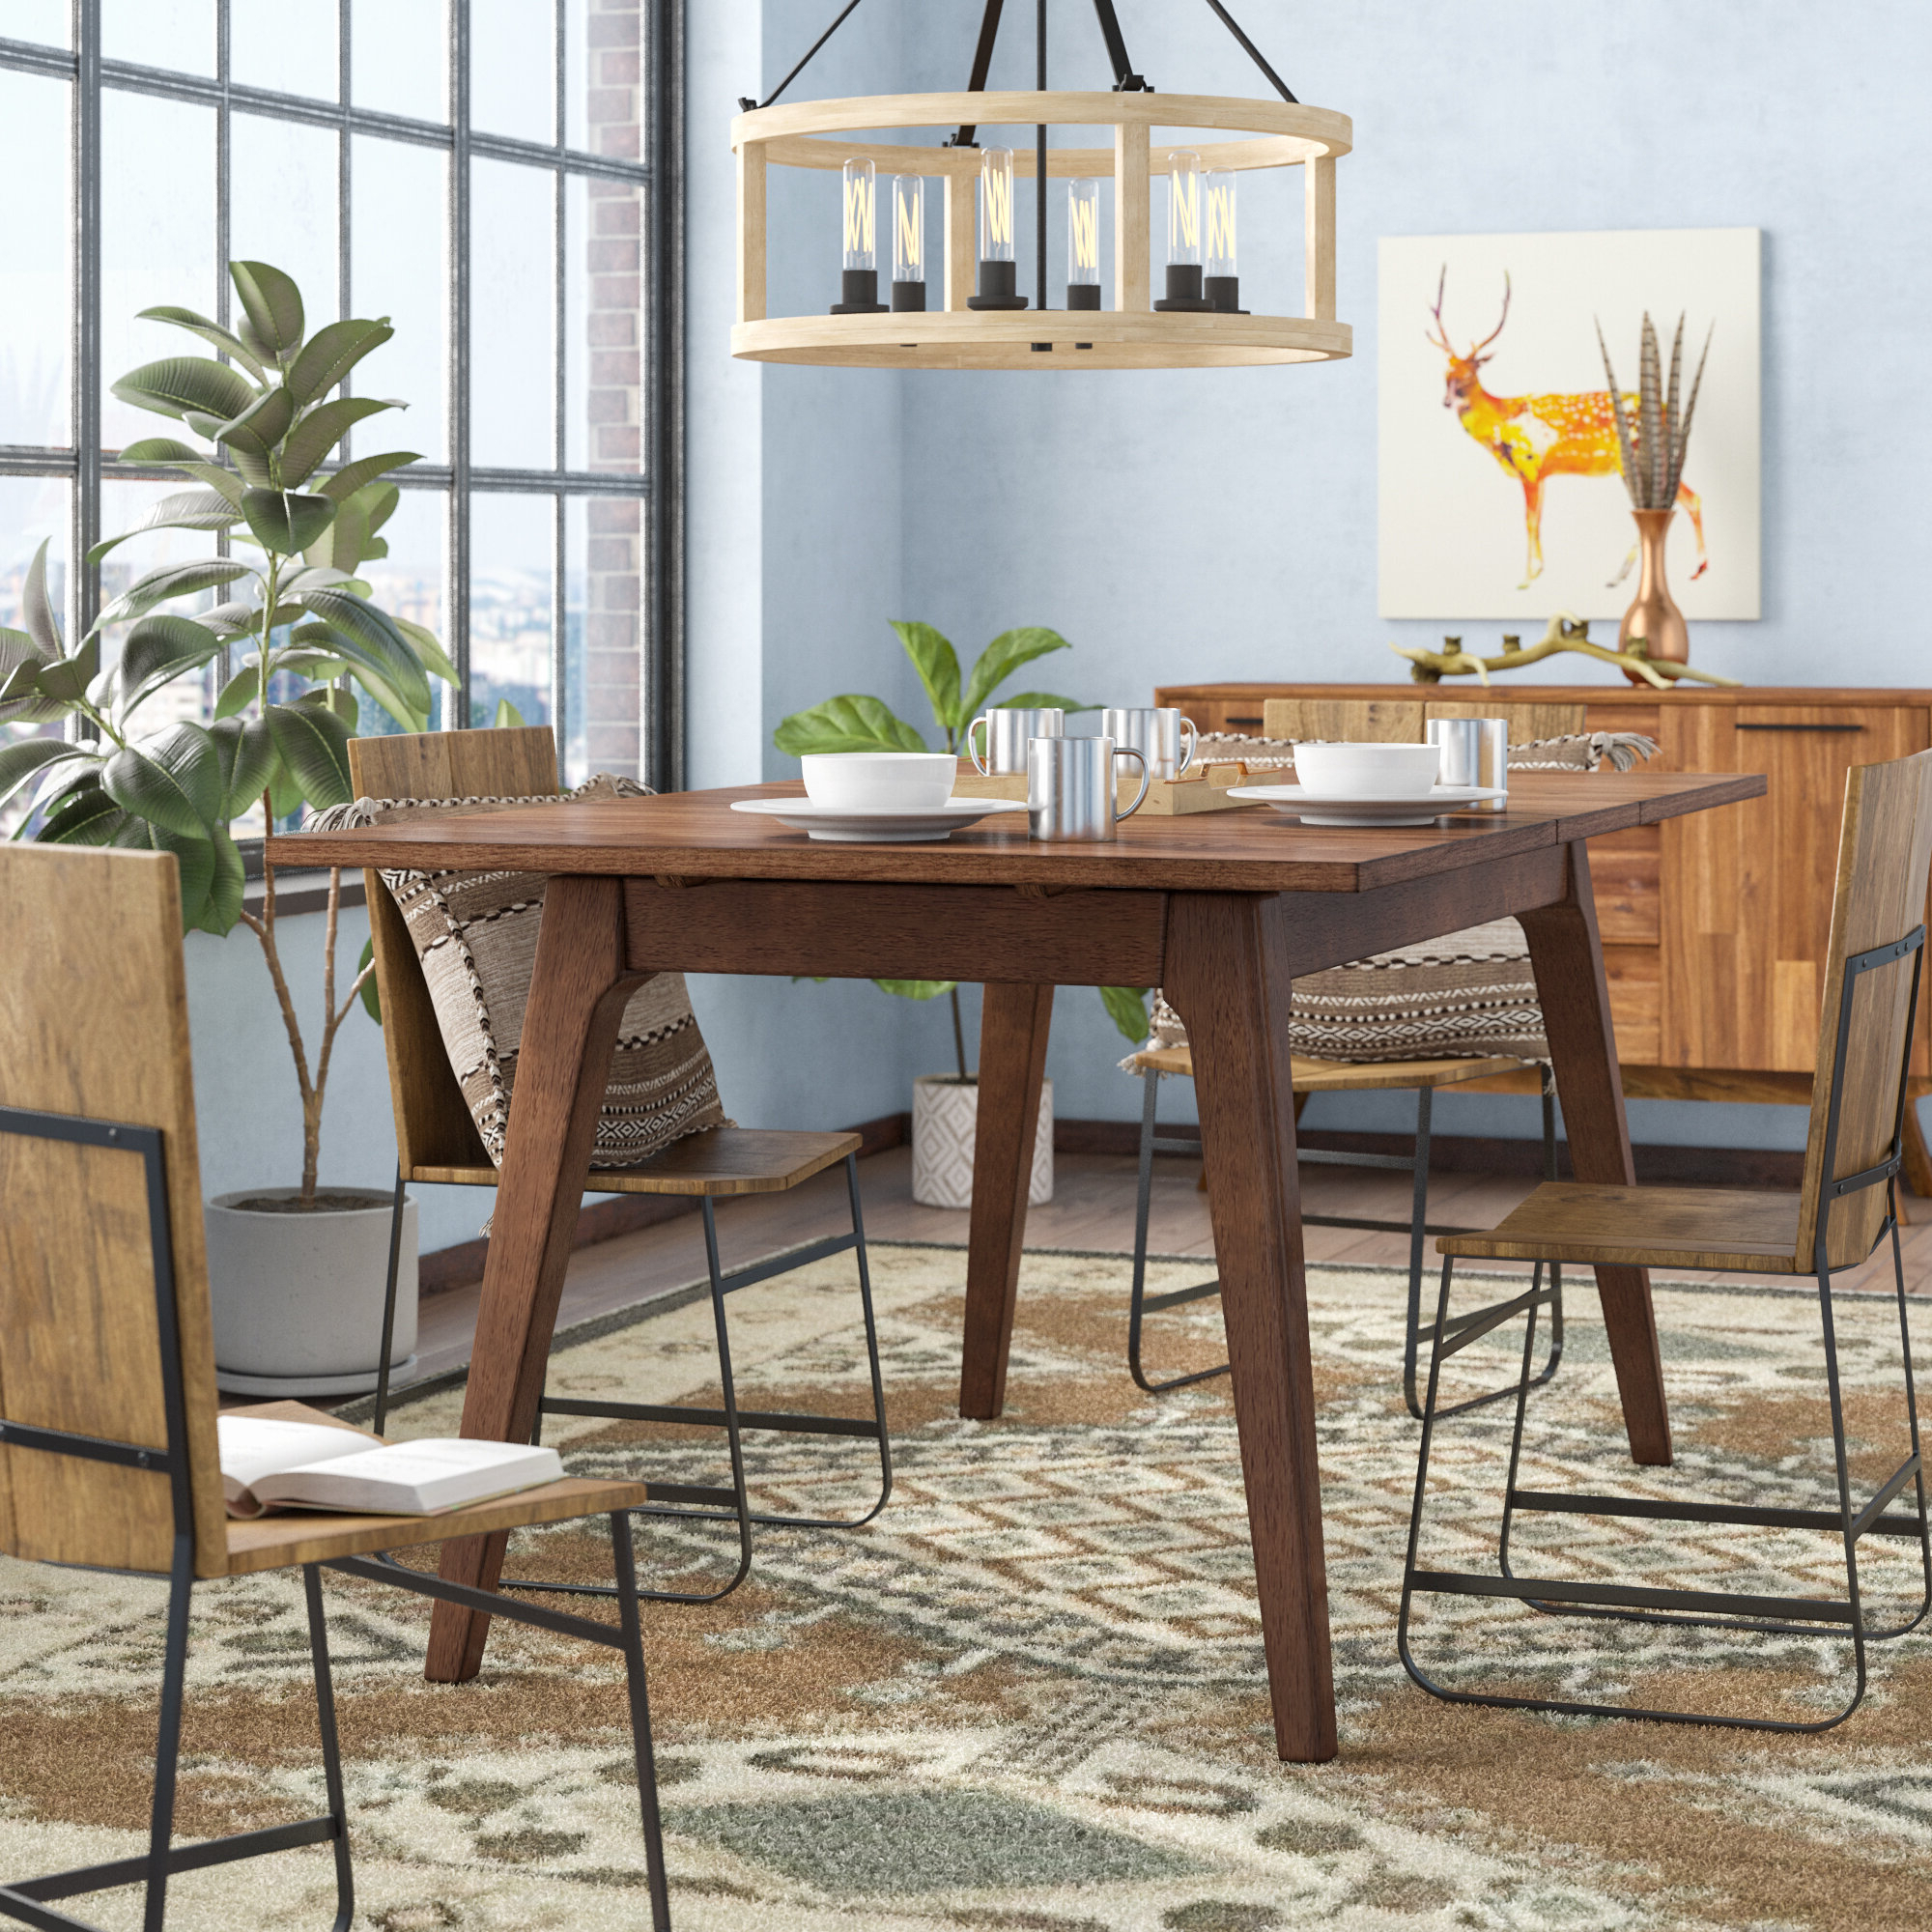 Wayfair Inside Transitional 4 Seating Double Drop Leaf Casual Dining Tables (View 11 of 25)